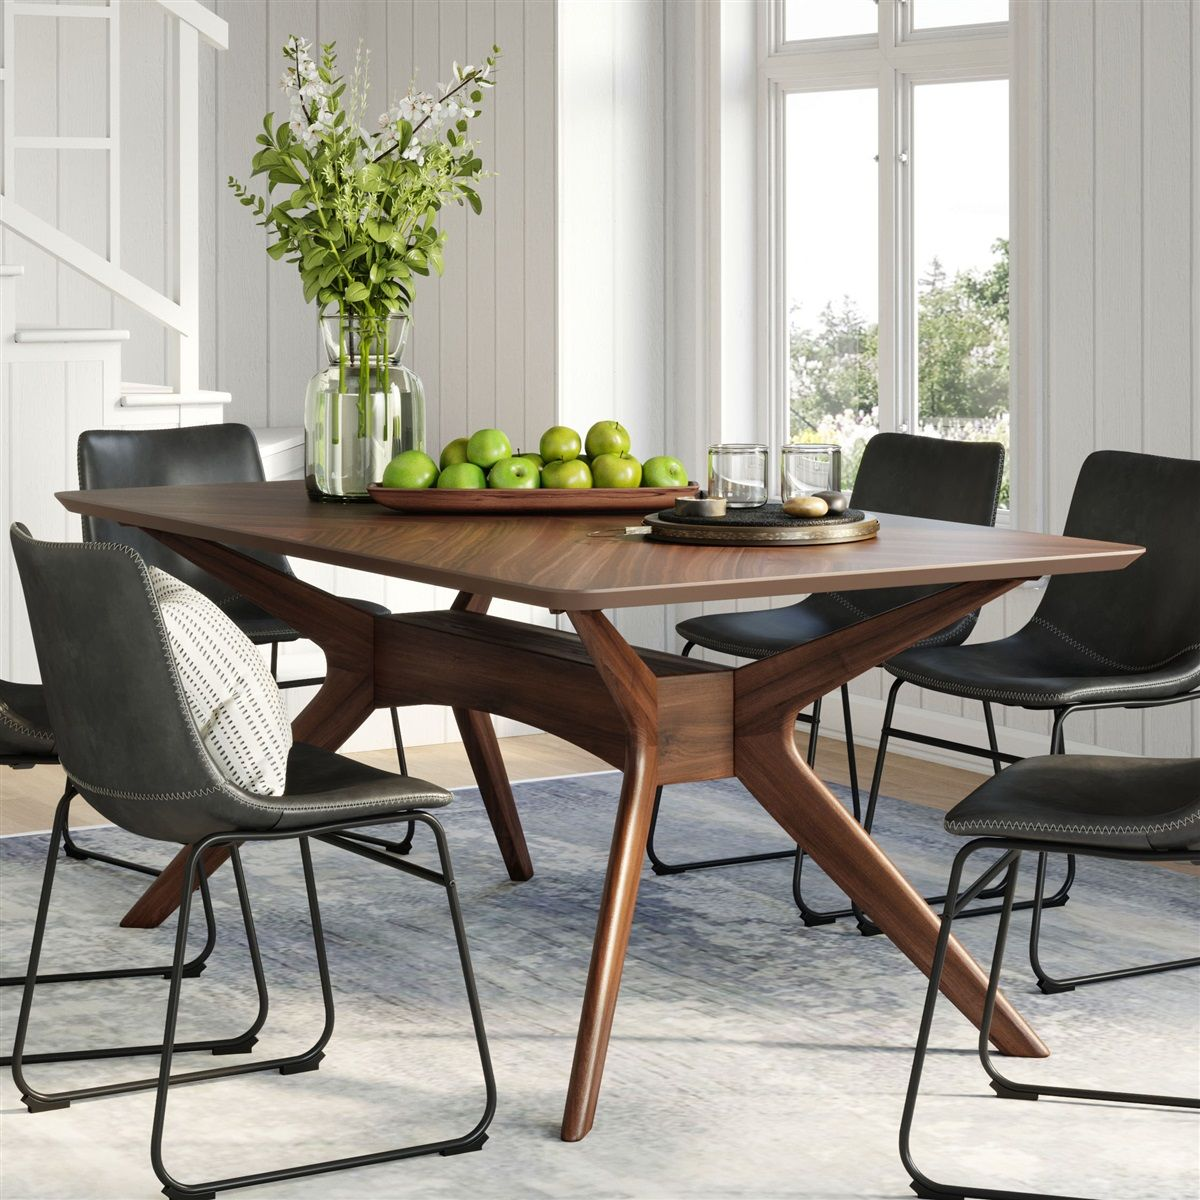 Sigrid Rectangular Dining Table Midcentury Modern Dining Table Solid Wood Dining Table Mid Century Dining Table